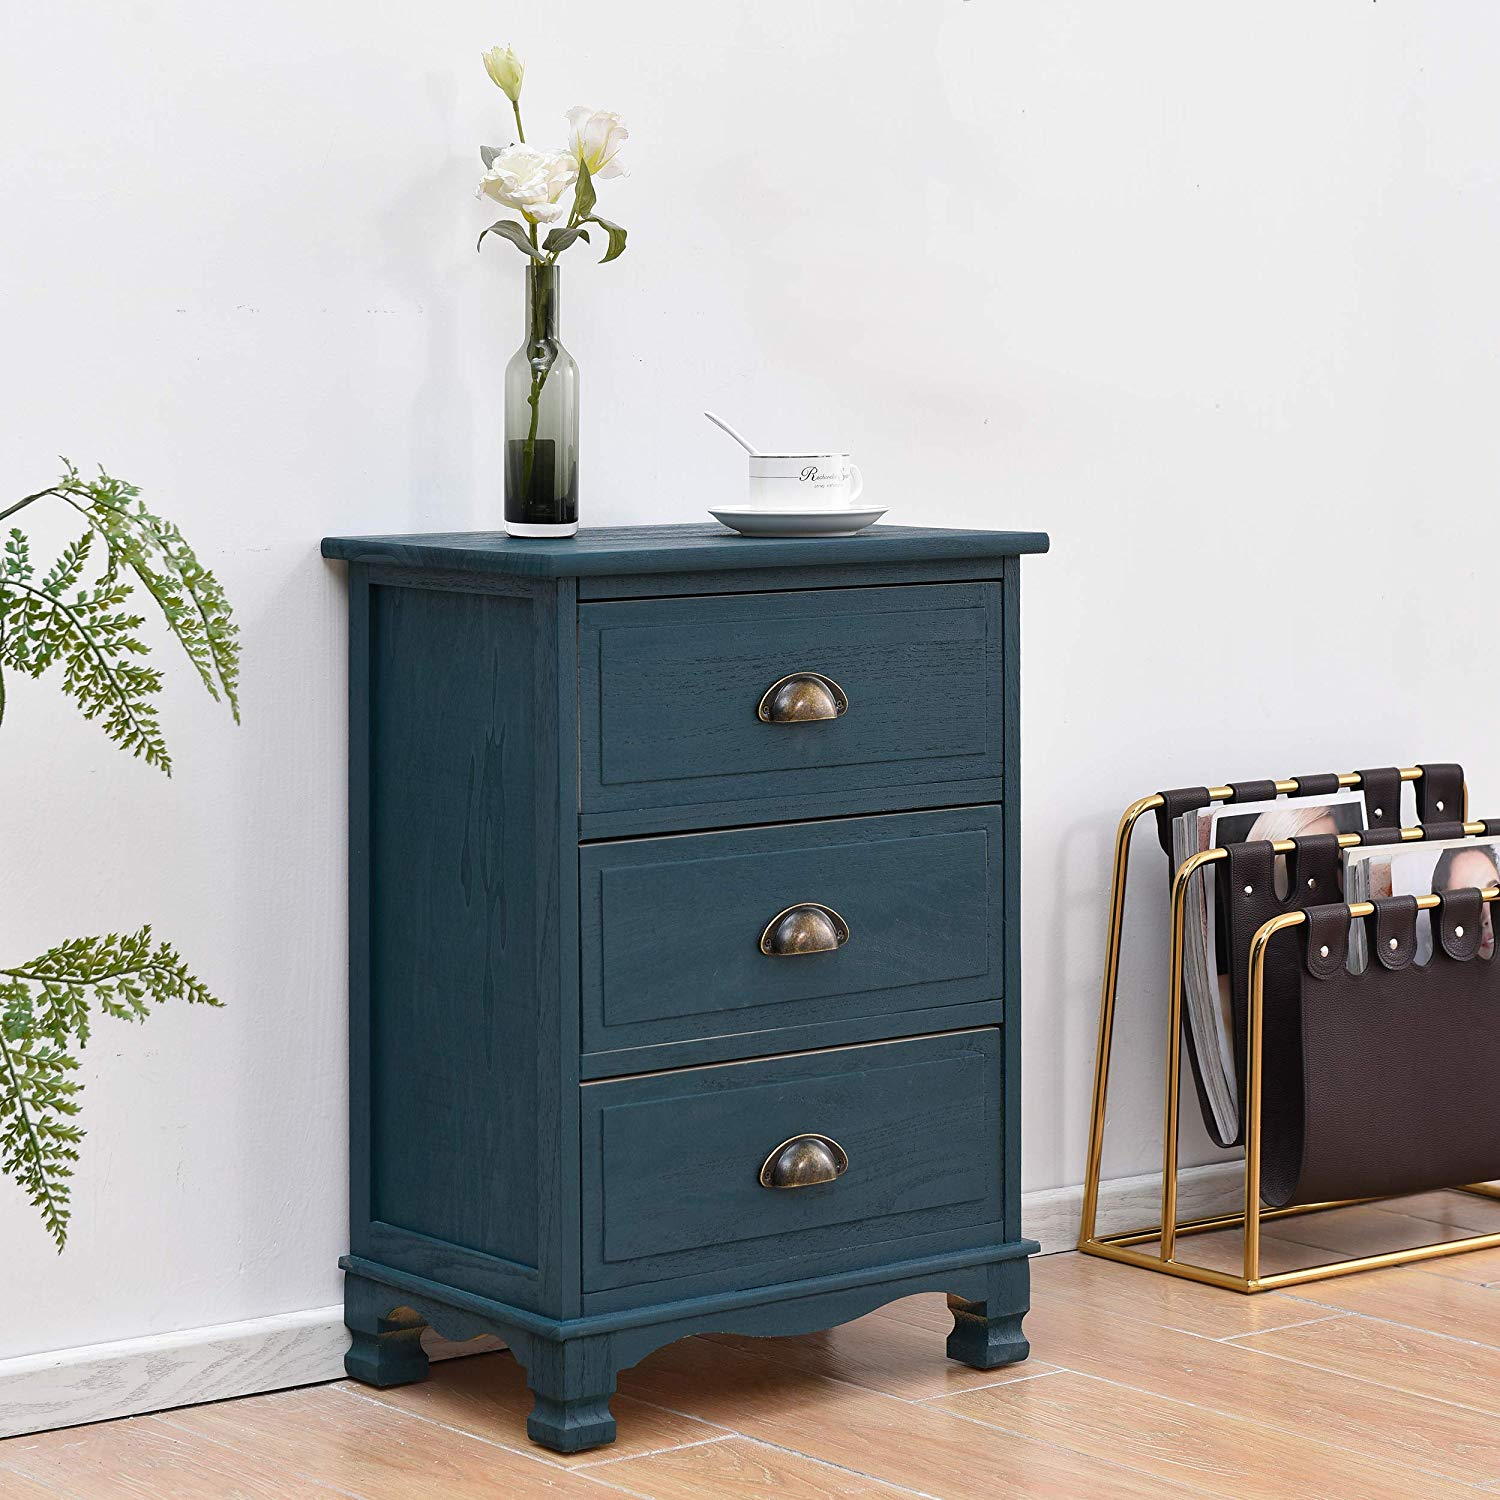 CAMROSE Wooden Chest of Drawers/Bedside Table with Metal Cup Pull Handles Blue 3 Drawer 1